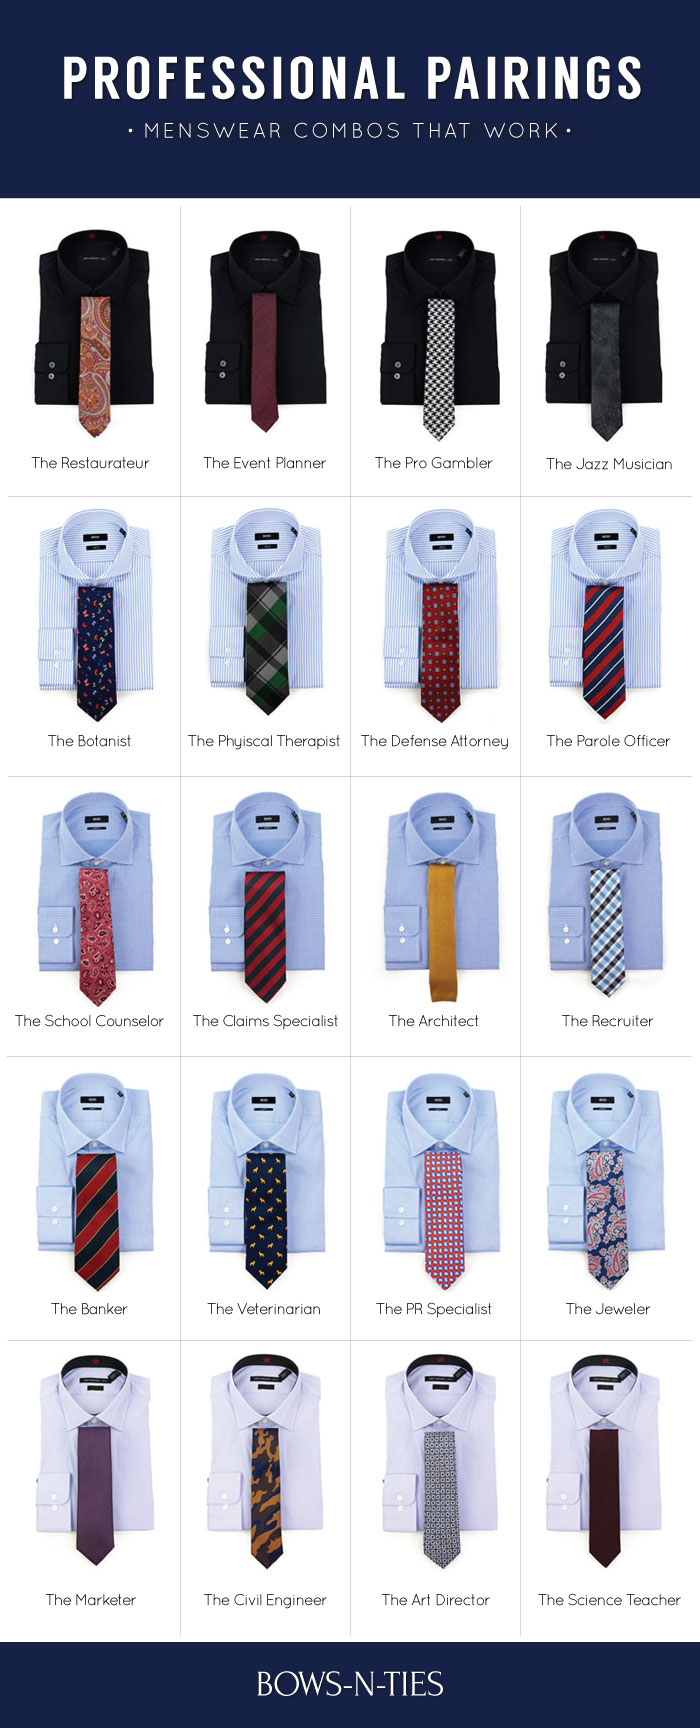 Proper Neckwear Options by Profession